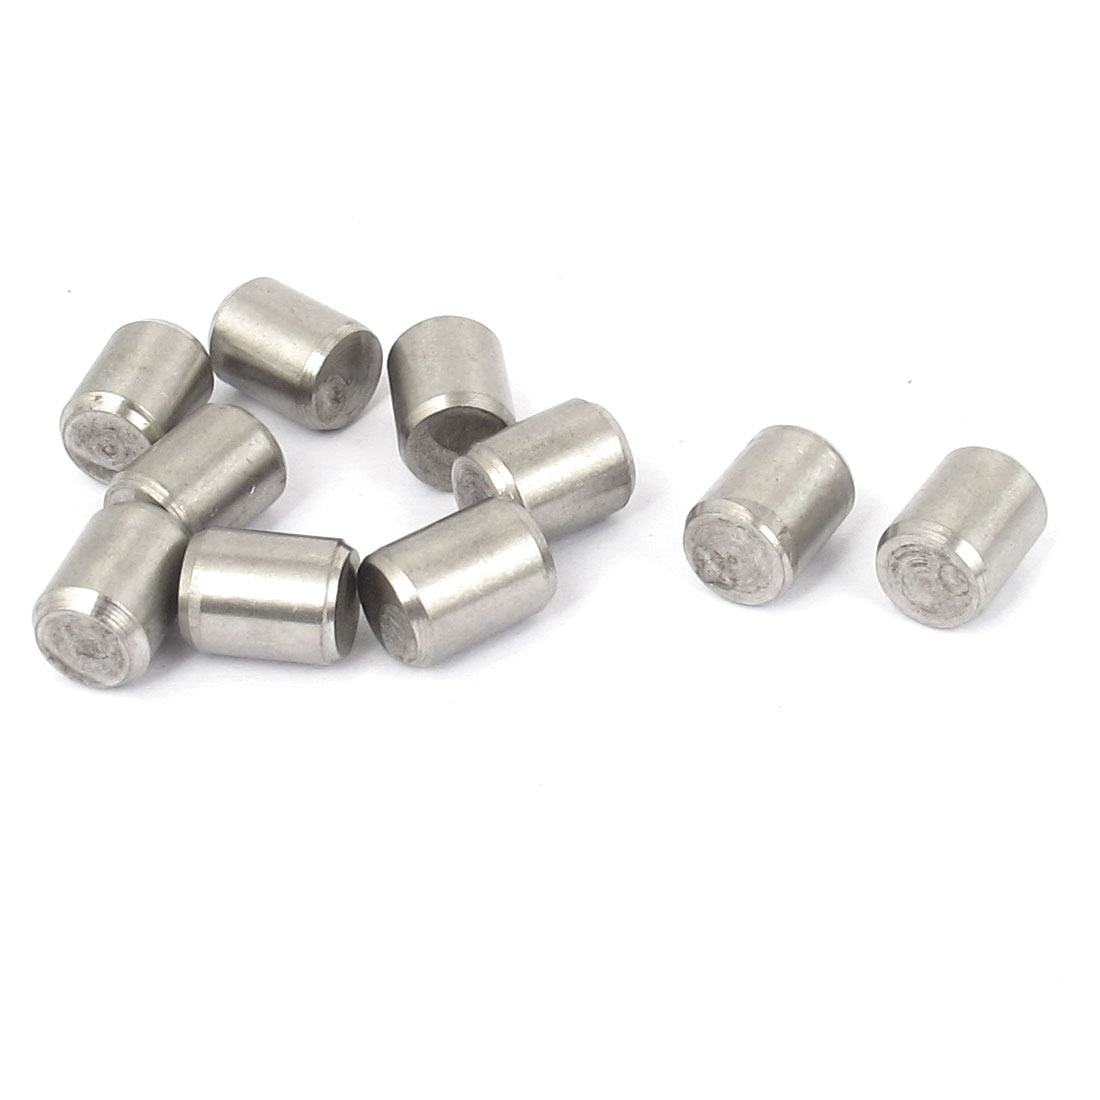 8mm x 10mm 304 Stainless Steel Dowel Pins Fasten Elements Silver Tone 10pcs